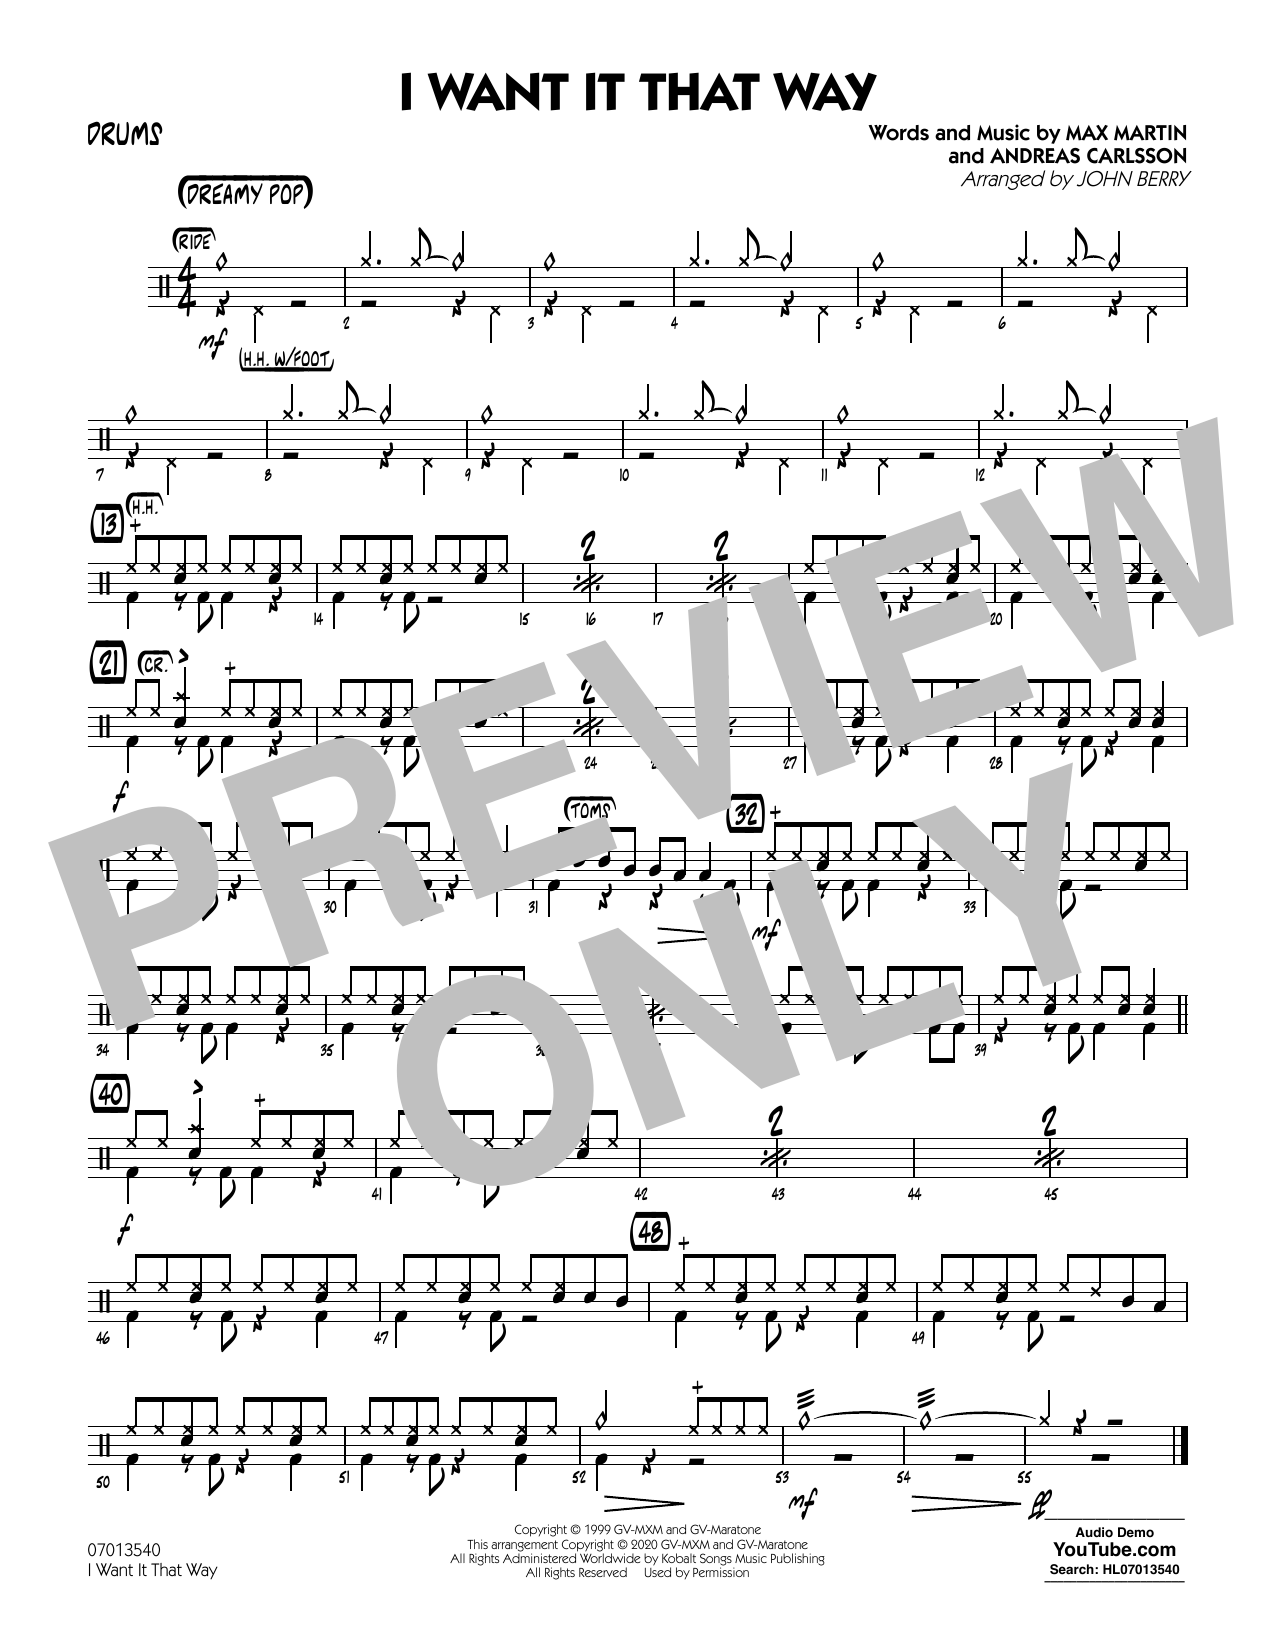 I Want It That Way (arr. John Berry) - Drums Sheet Music